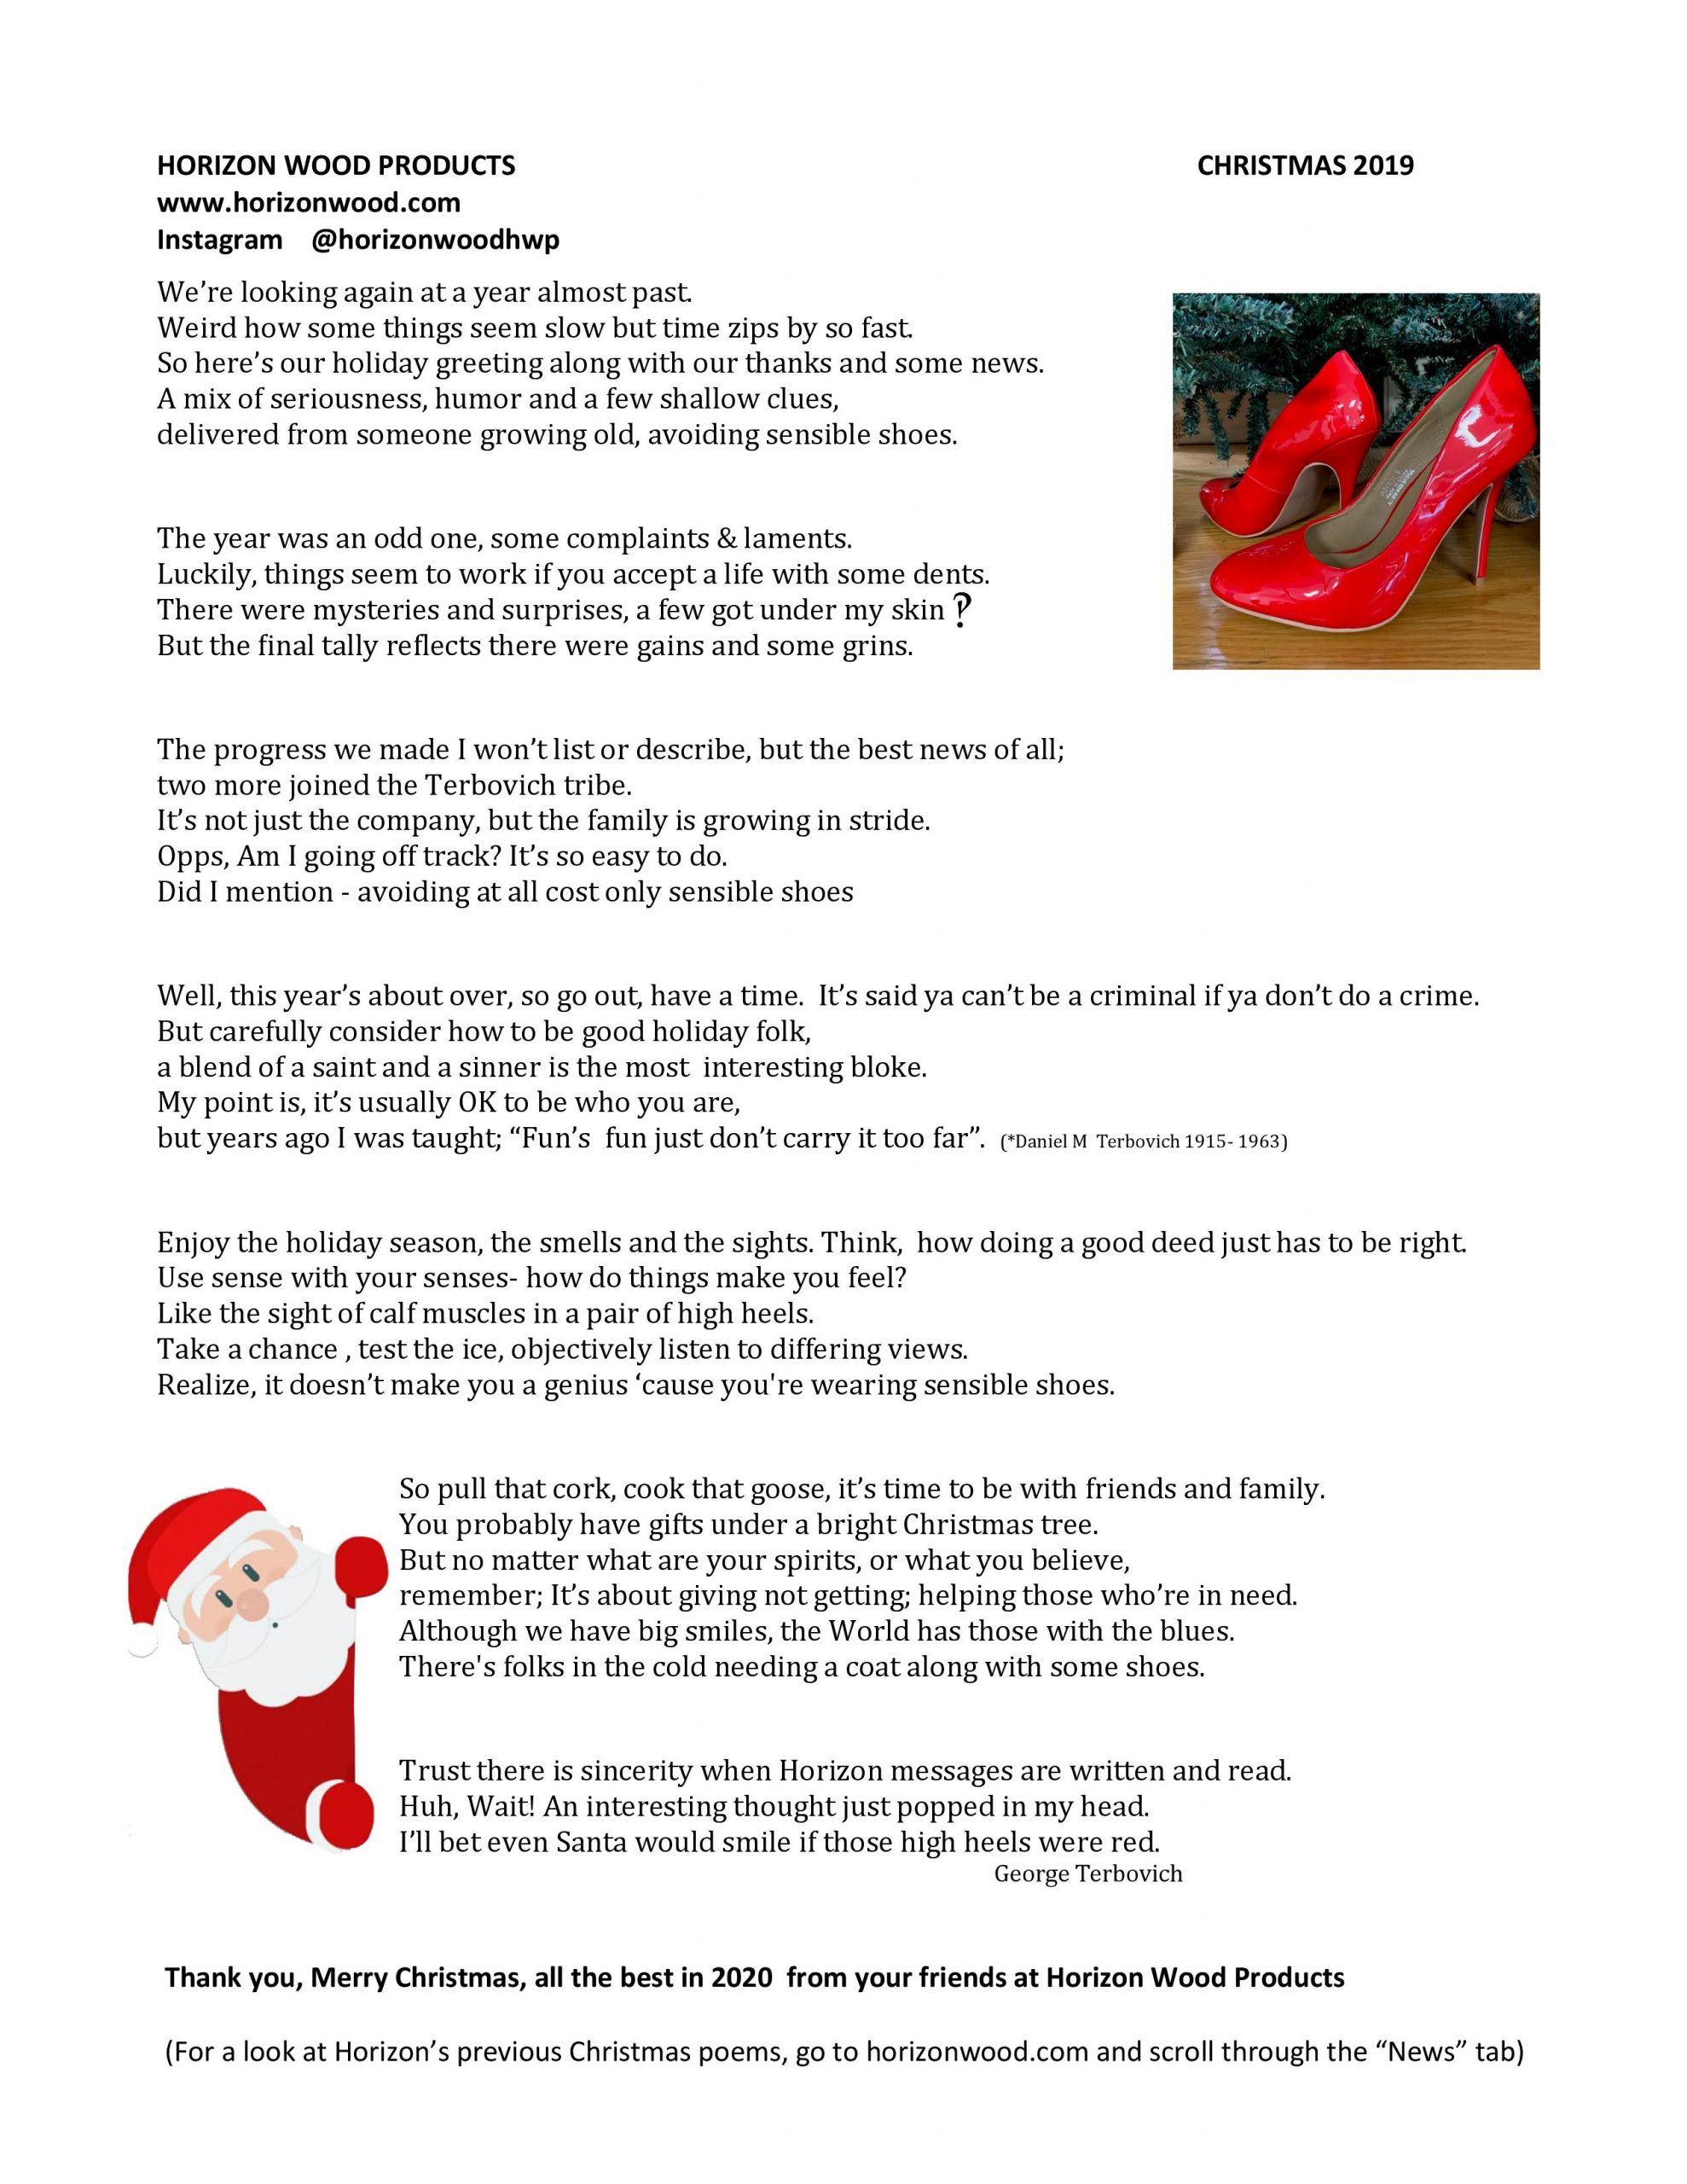 Image of Christmas poem text